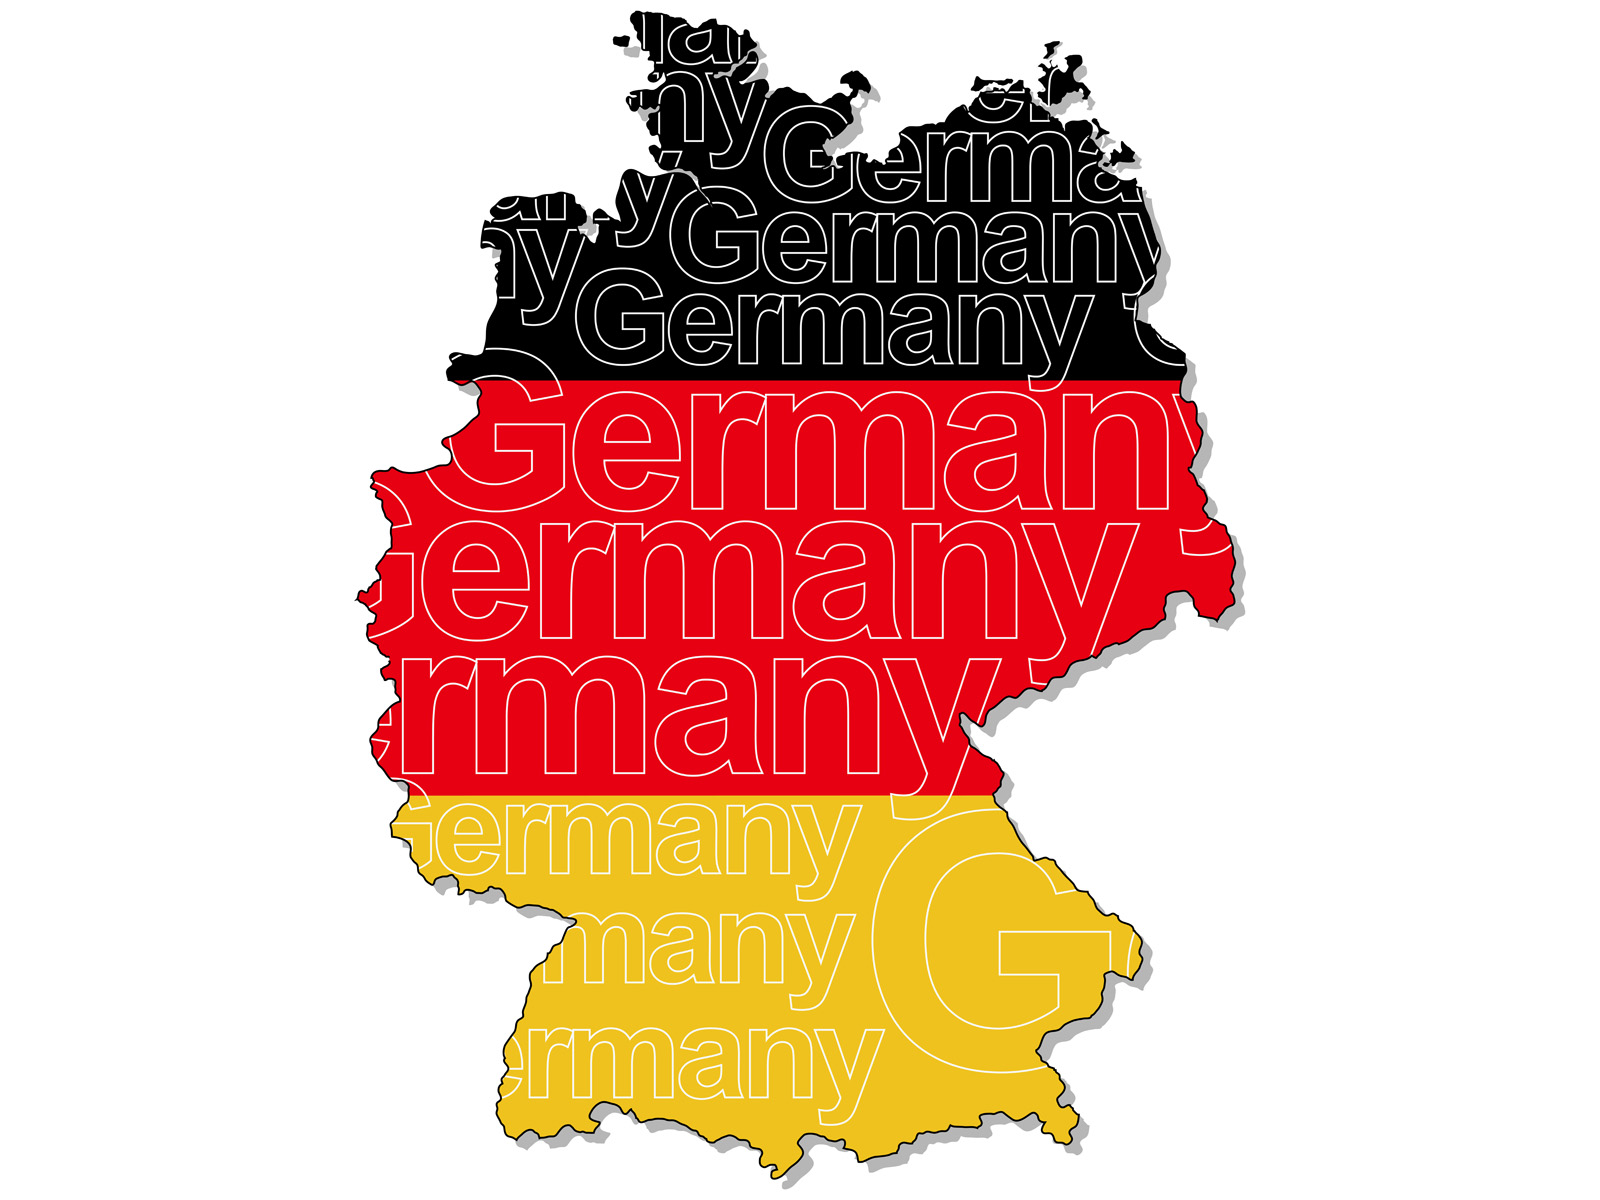 A map of Germany